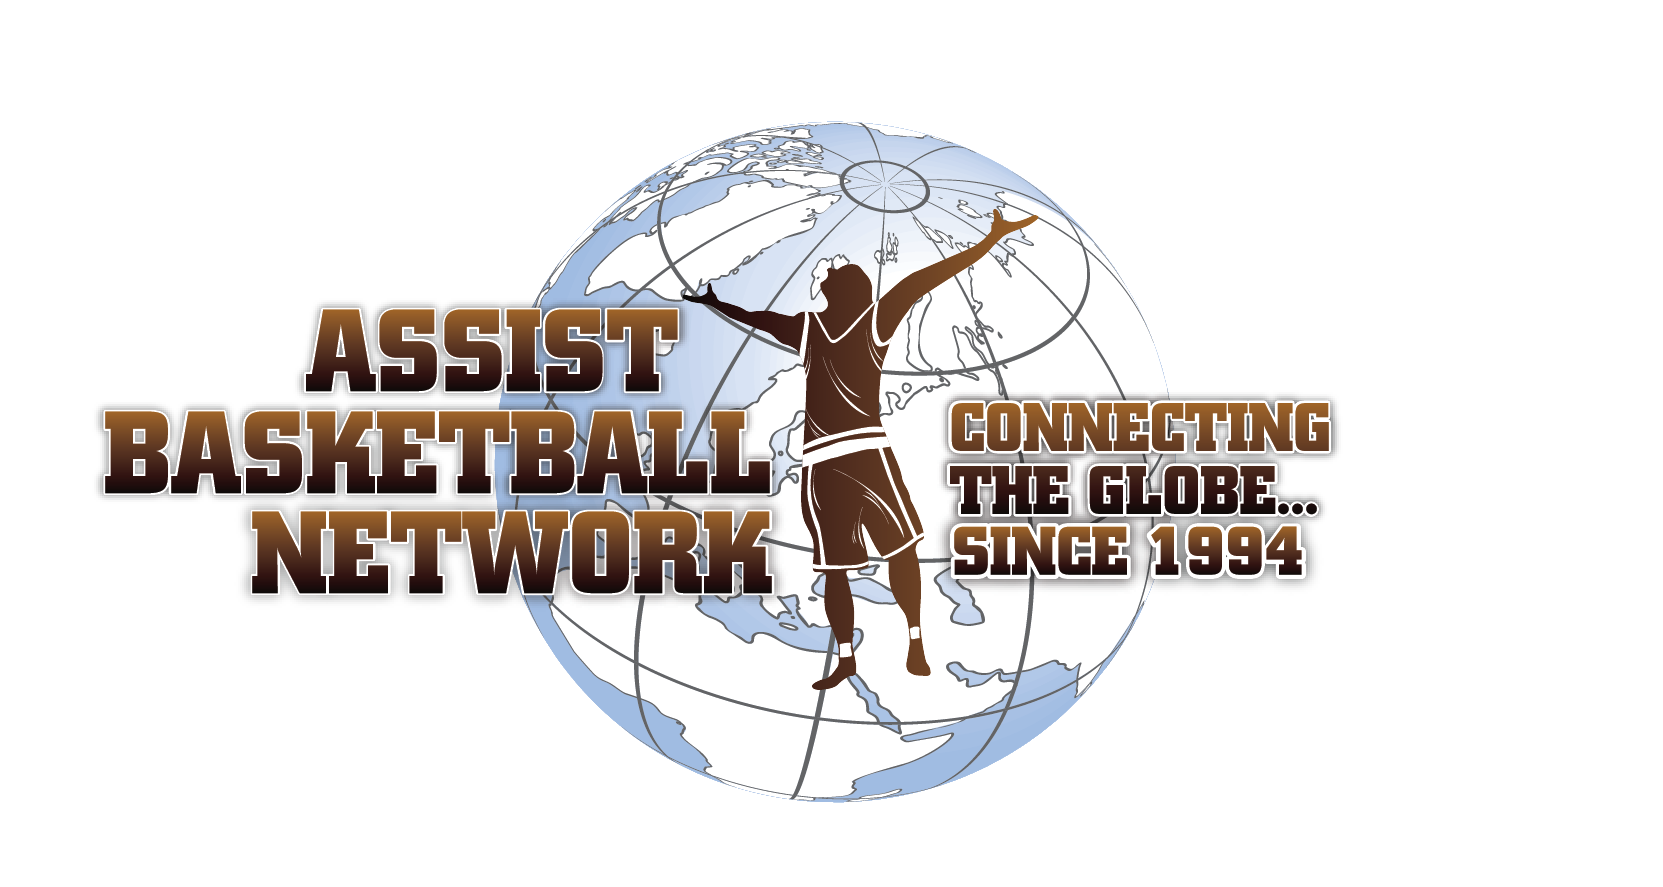 Assist Basketball Network